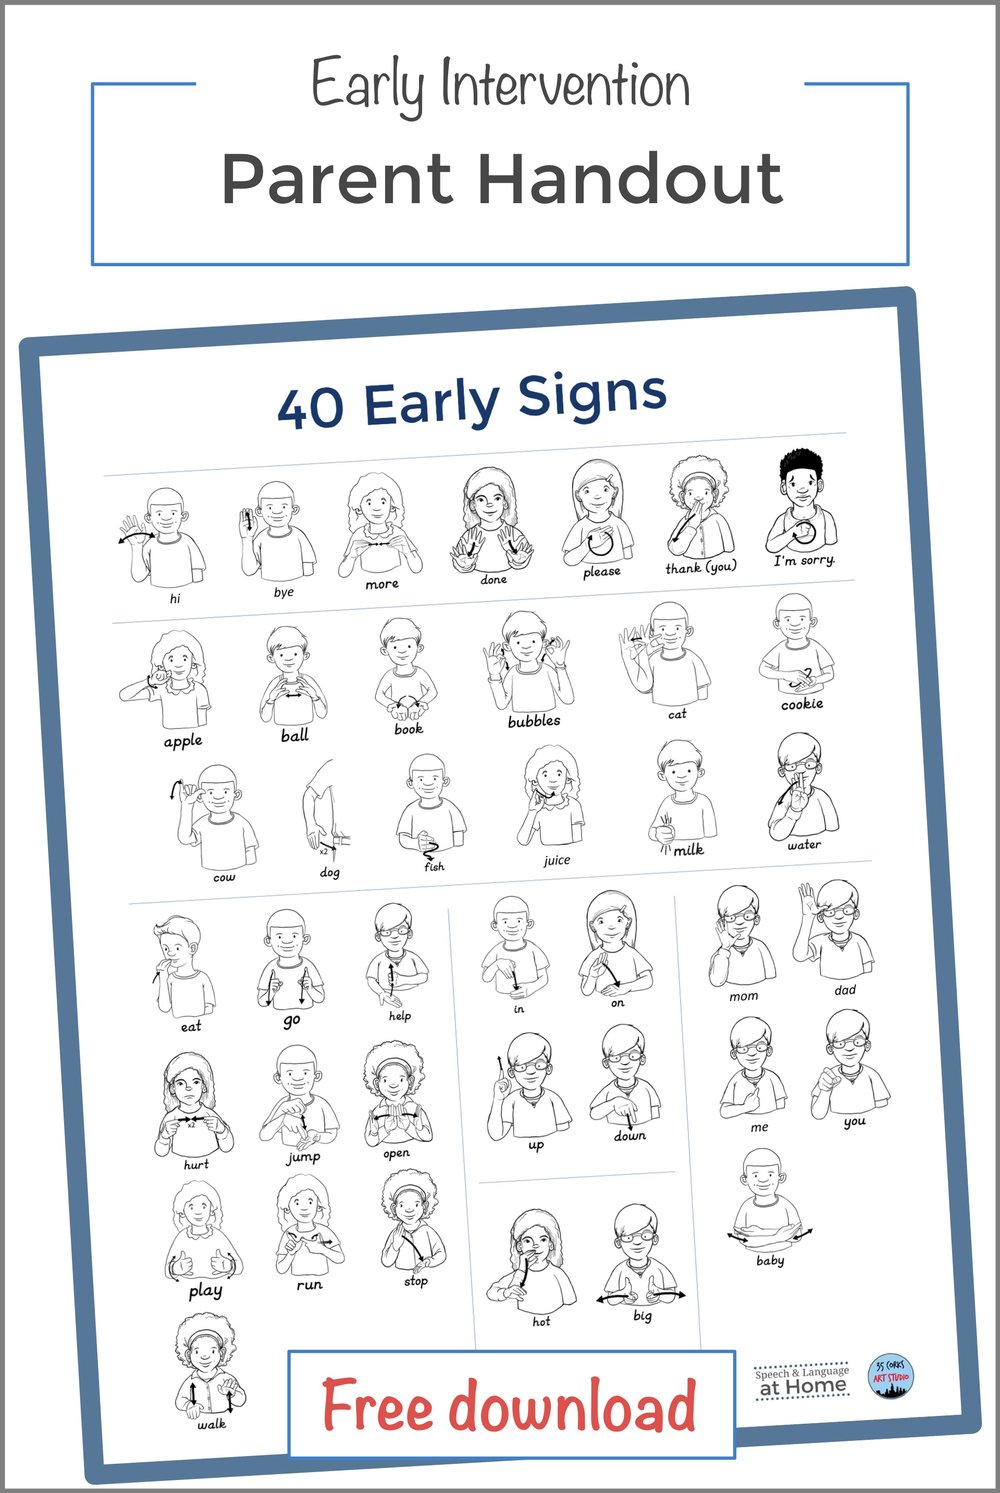 Early Intervention Parent Handout 40 Early Signs free download